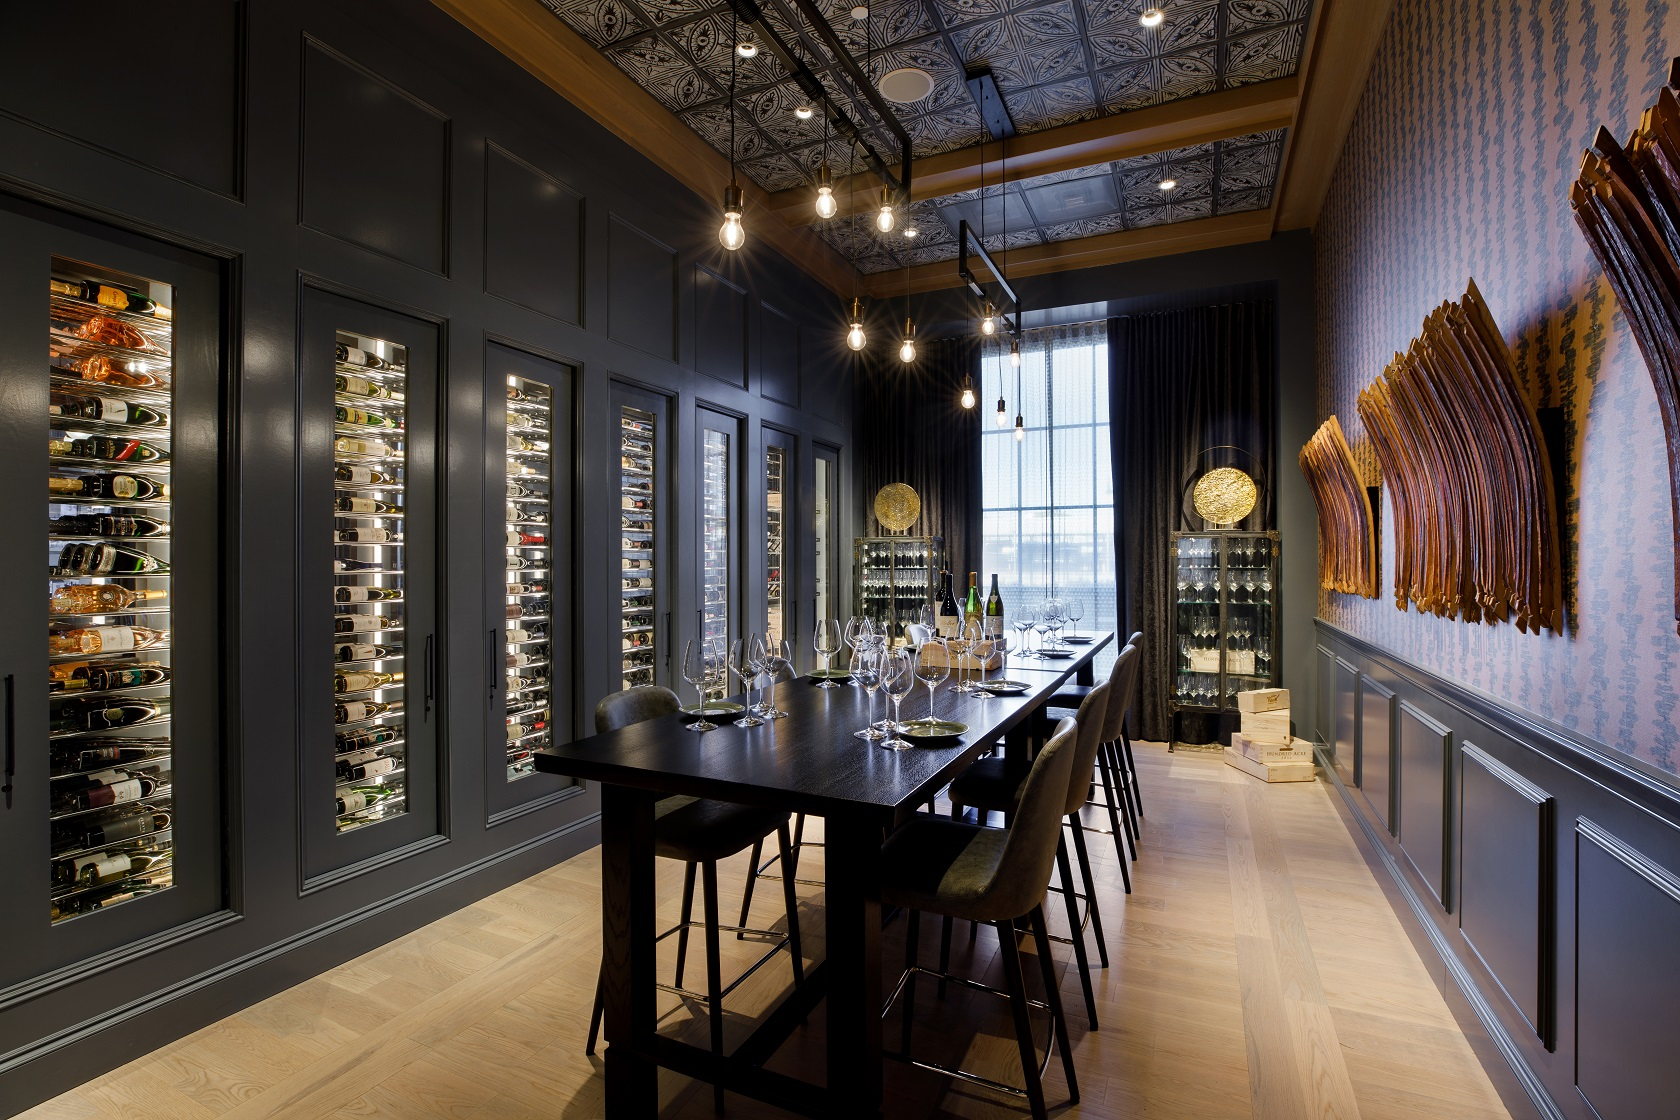 long dining table in a room with a wall displaying hundreds of wine bottles